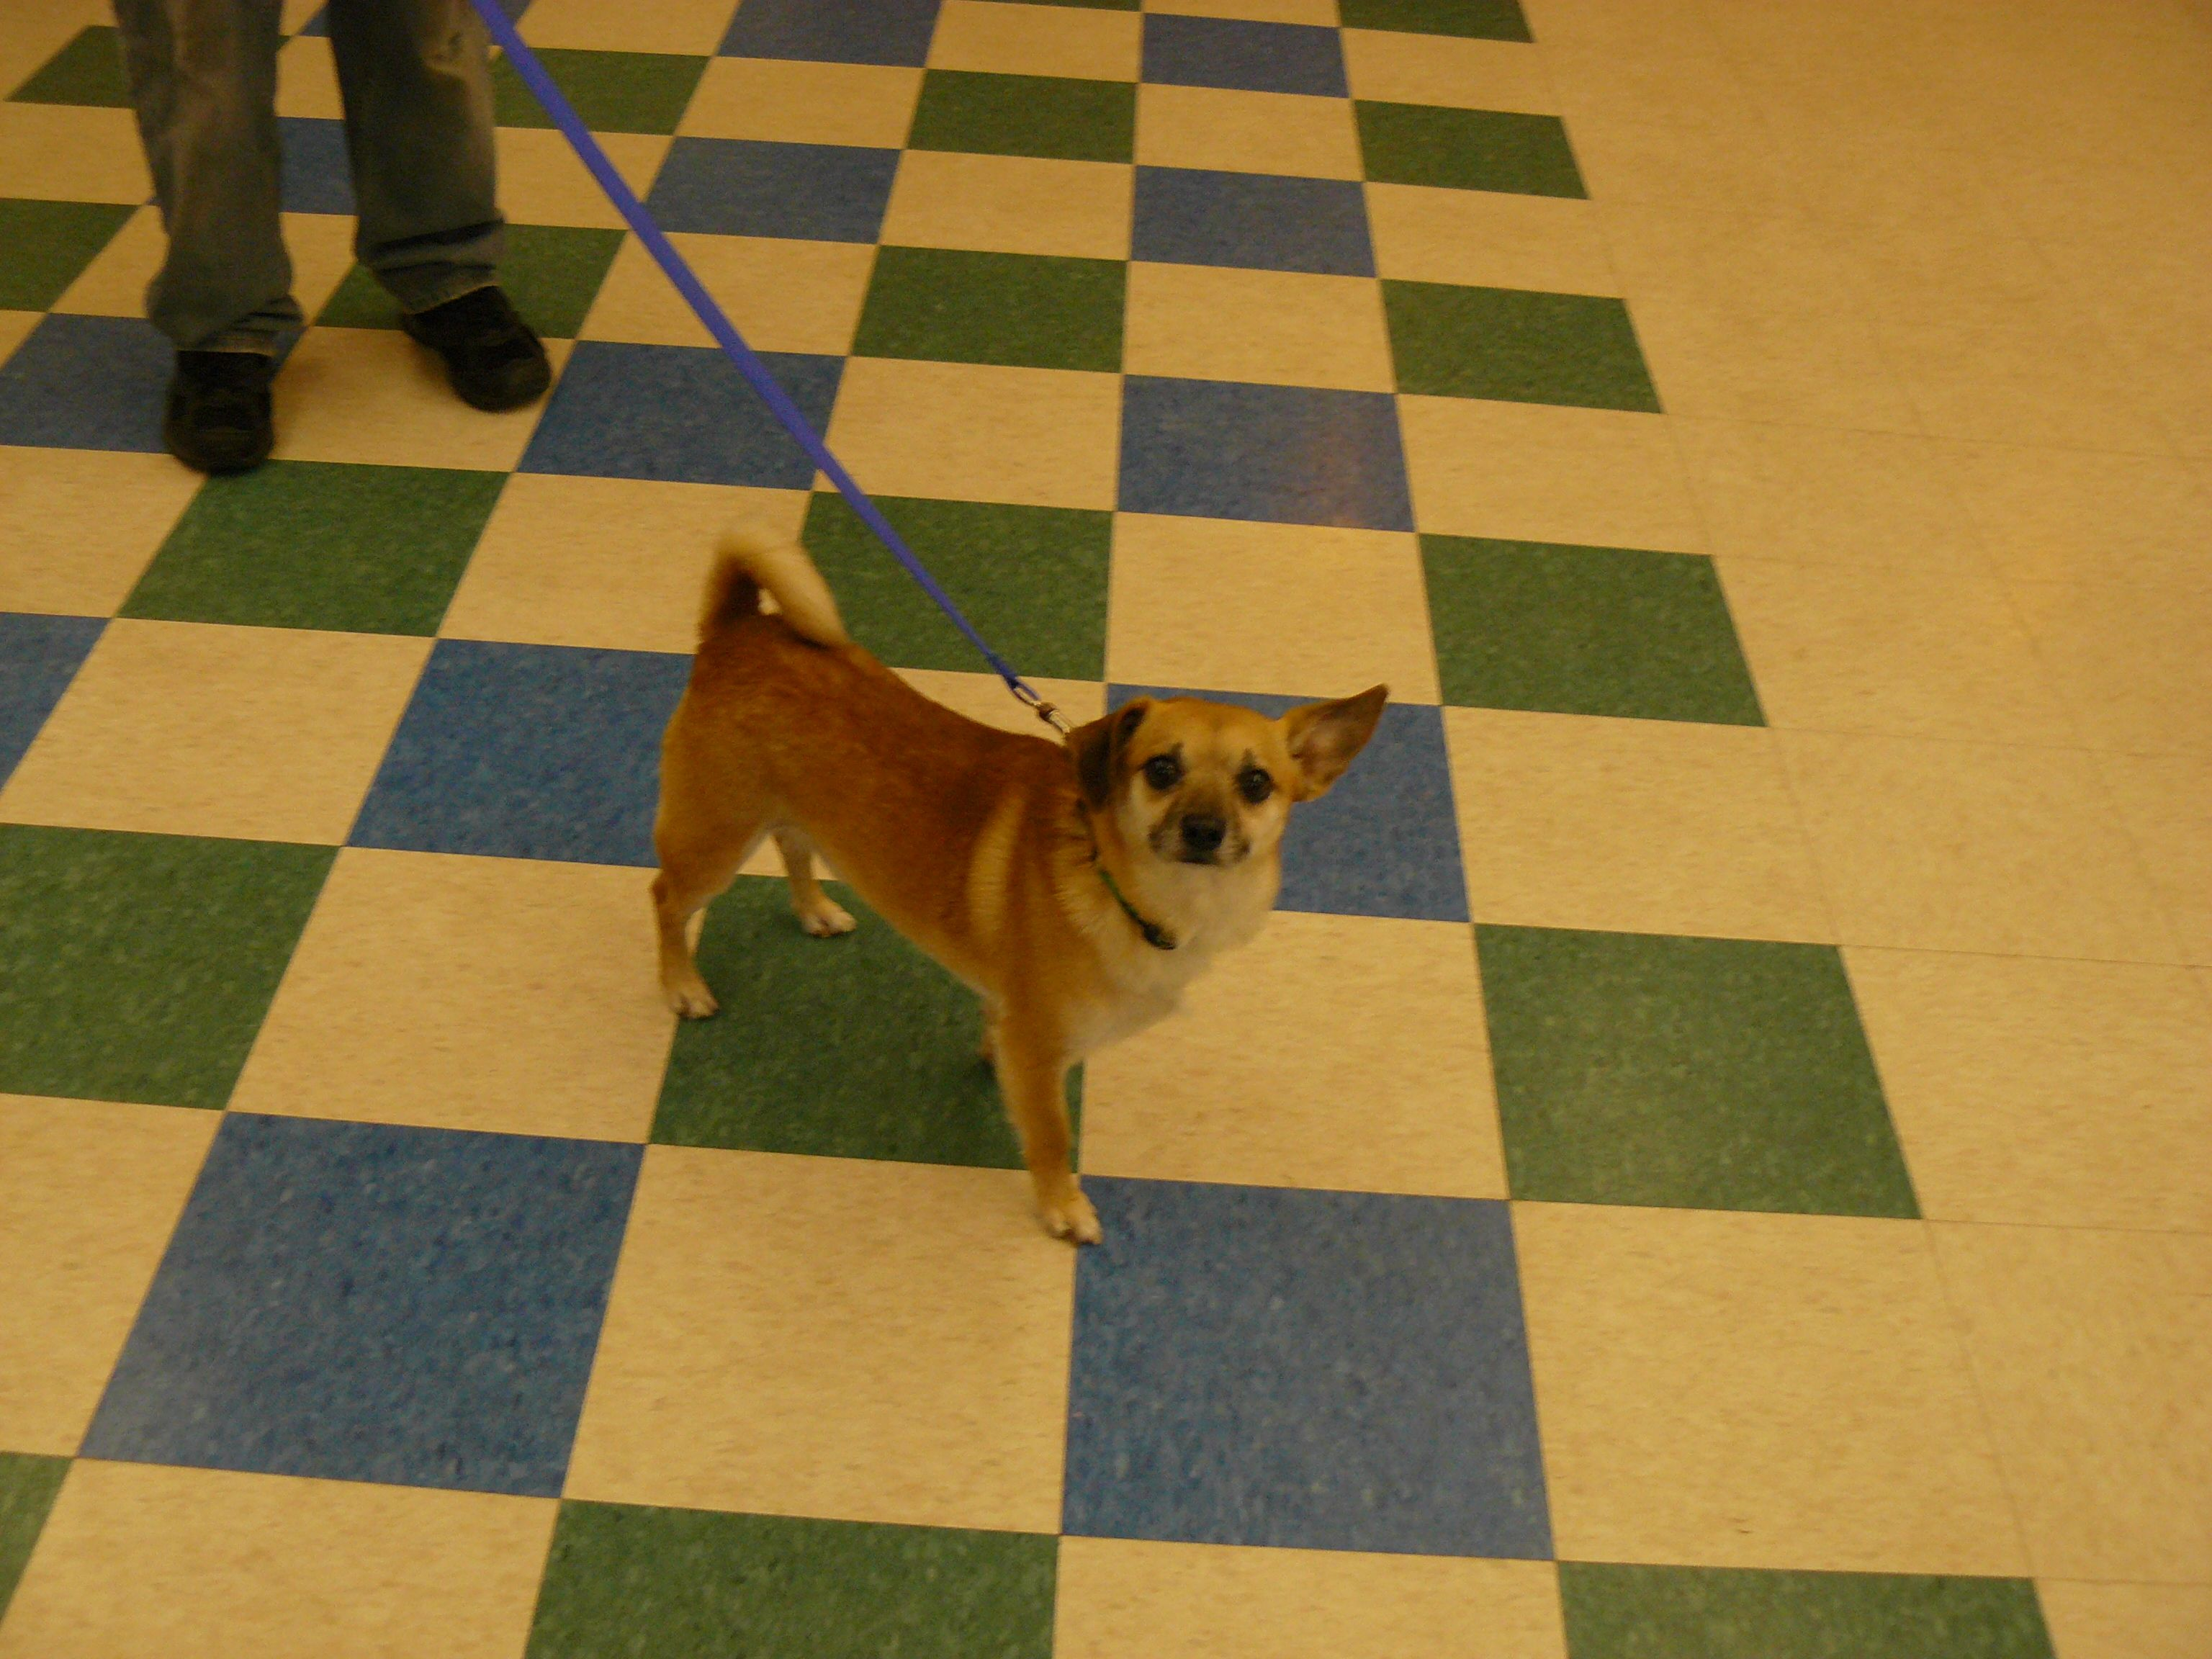 Roy Arlnh Pet Of The Week For July 27 August 2 2014 Check Out His Bio Http Www Petango Com Adopt Dog Houn Animal Rescue League Dog Adoption Animal Rescue